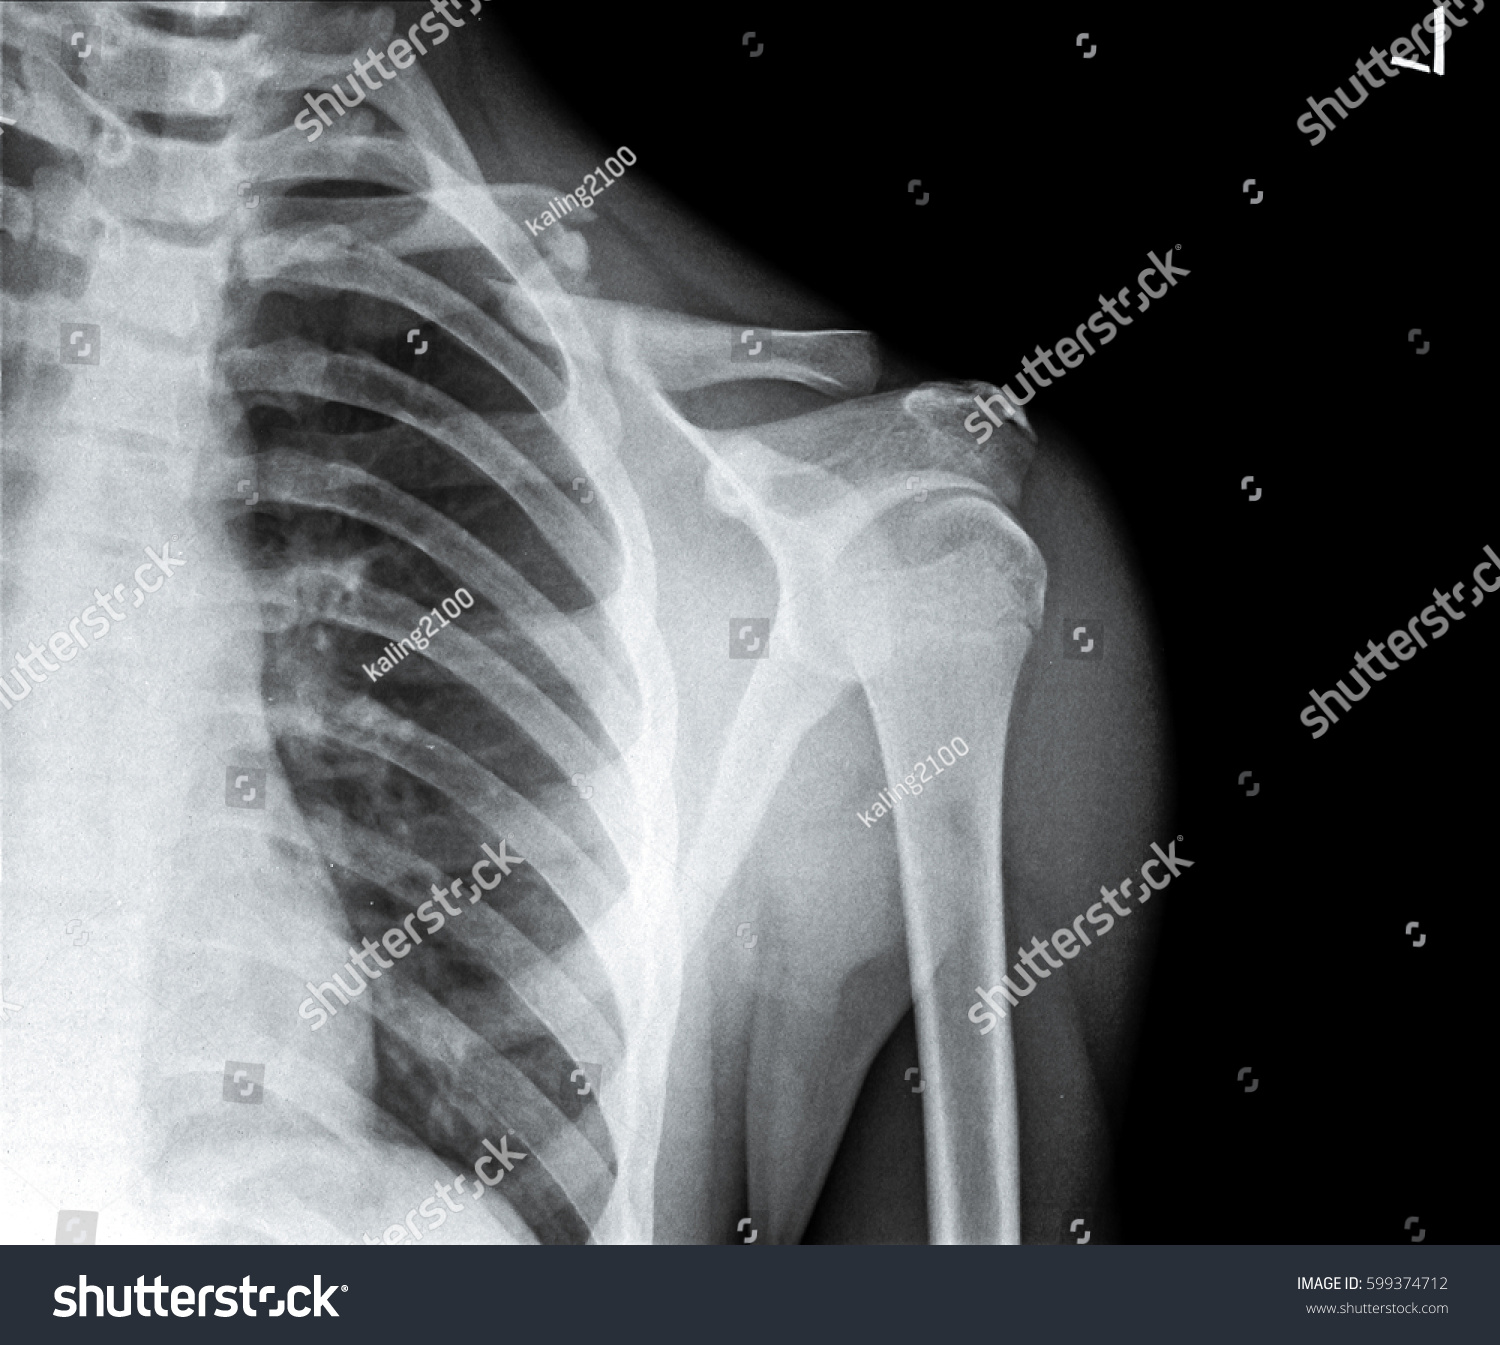 left clavicle x ray - photo #15